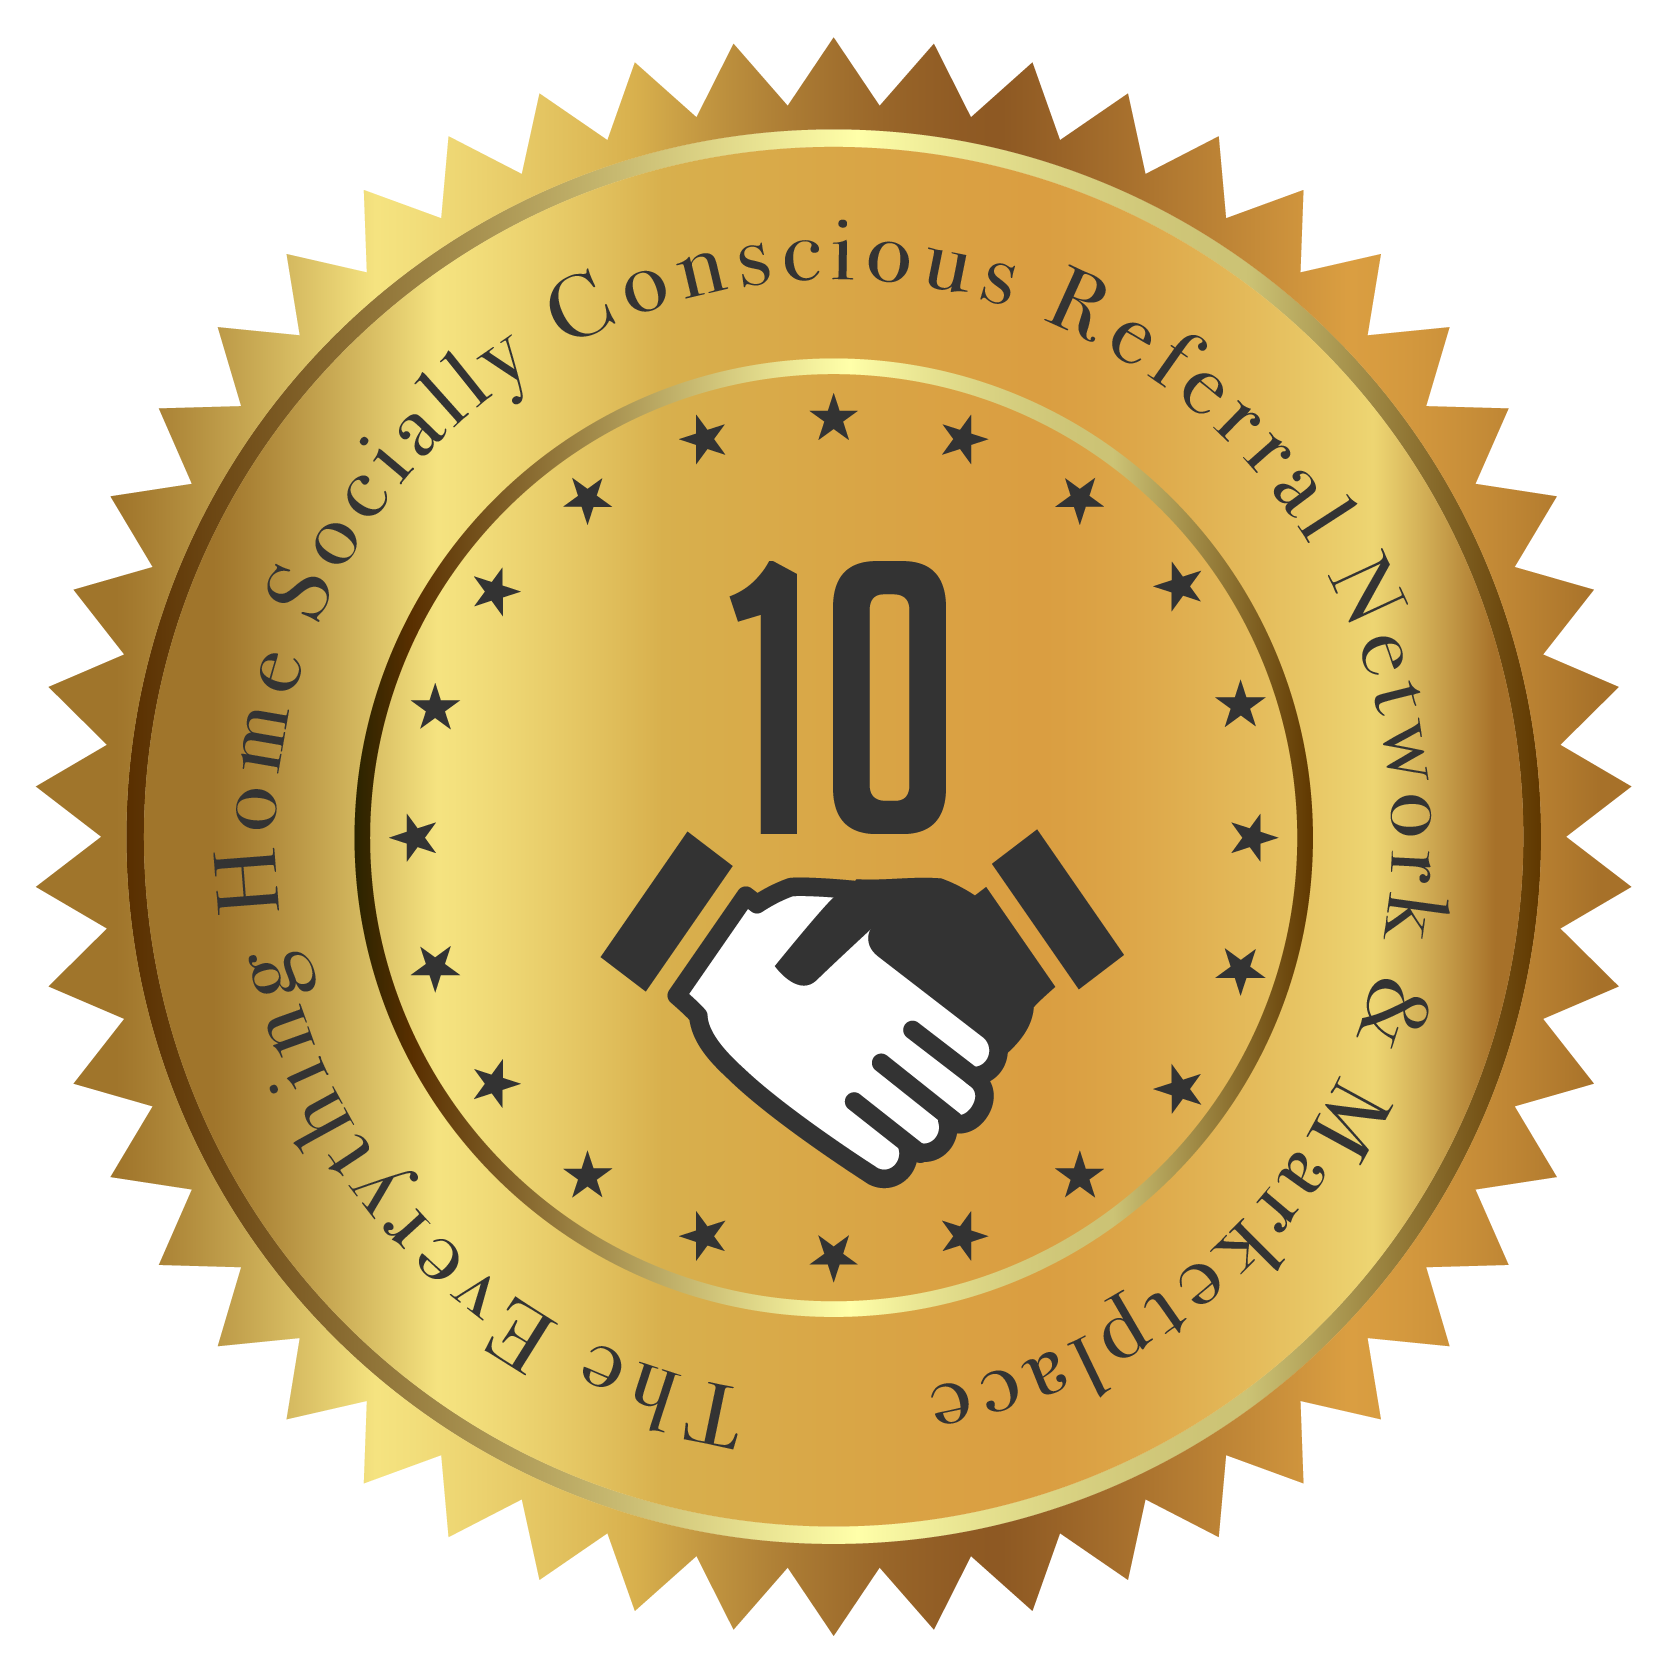 The Everything Home Socially Conscious Referral Network & Marketplace Seal - 10